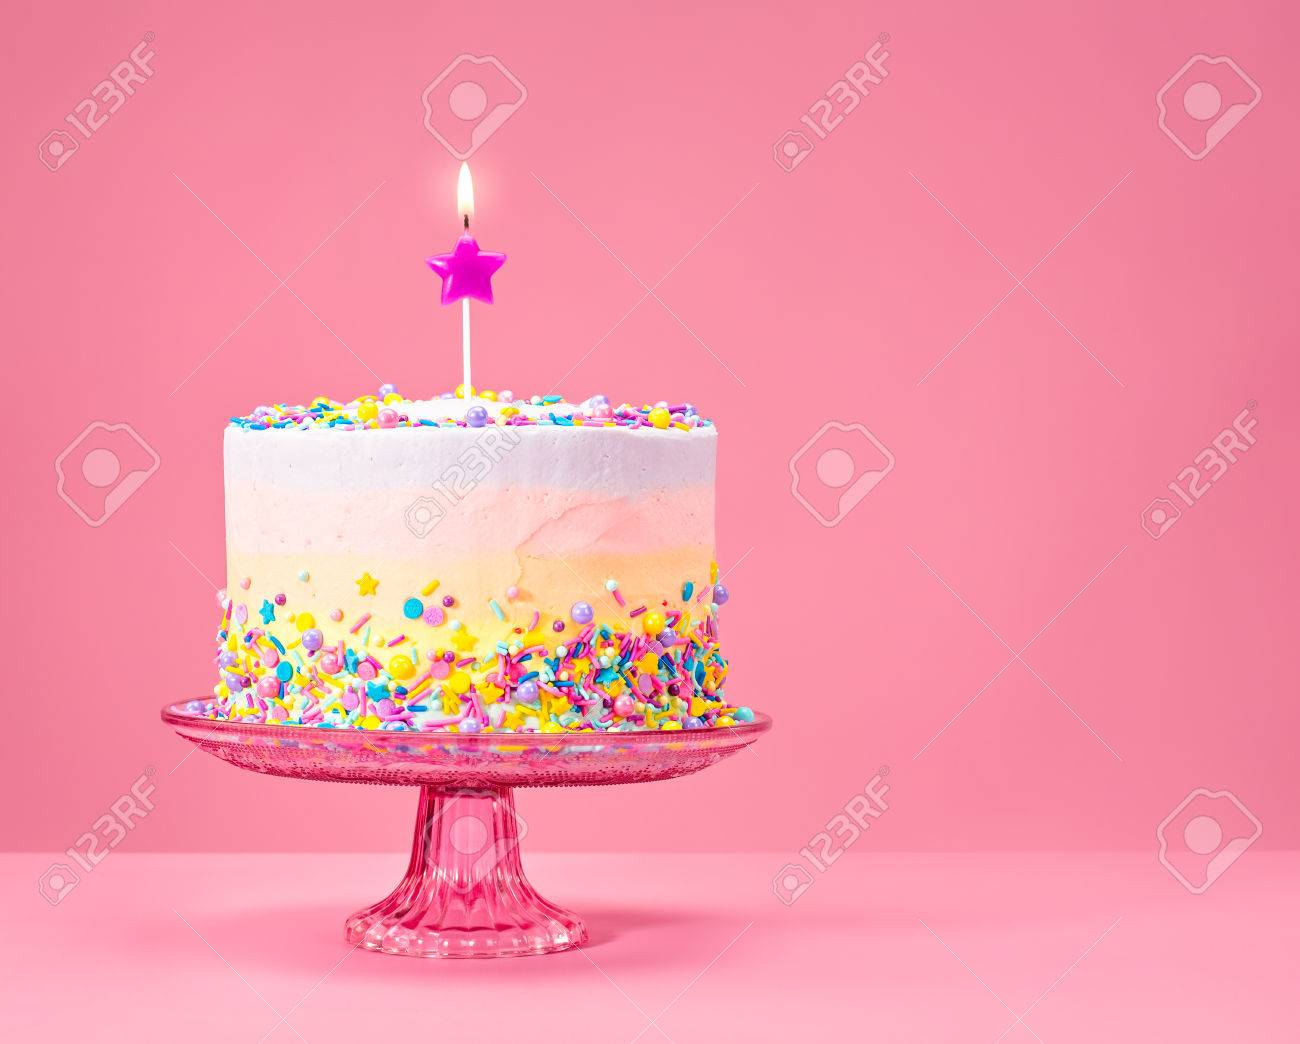 Colorful Birthday Cake With Sprinkles Over A Pink Background Stock Photo